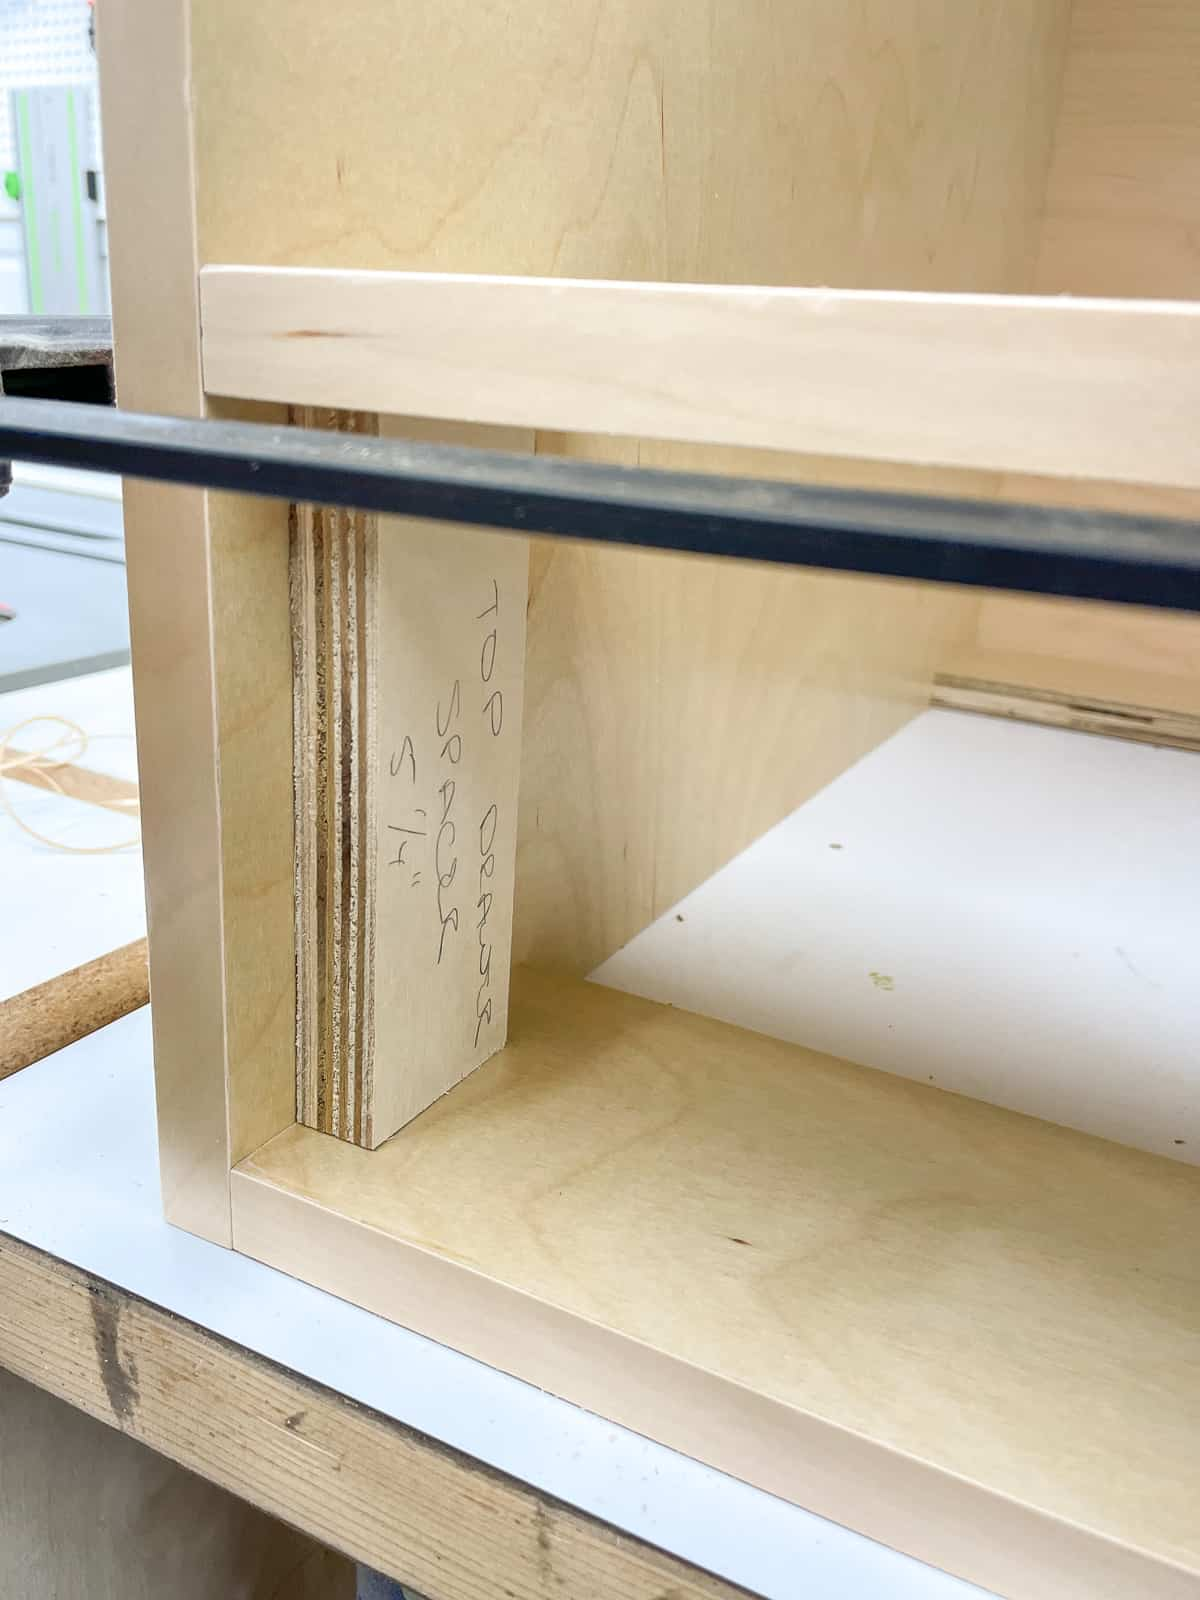 using a spacer to attach the drawer support for the cabinet box at the correct height